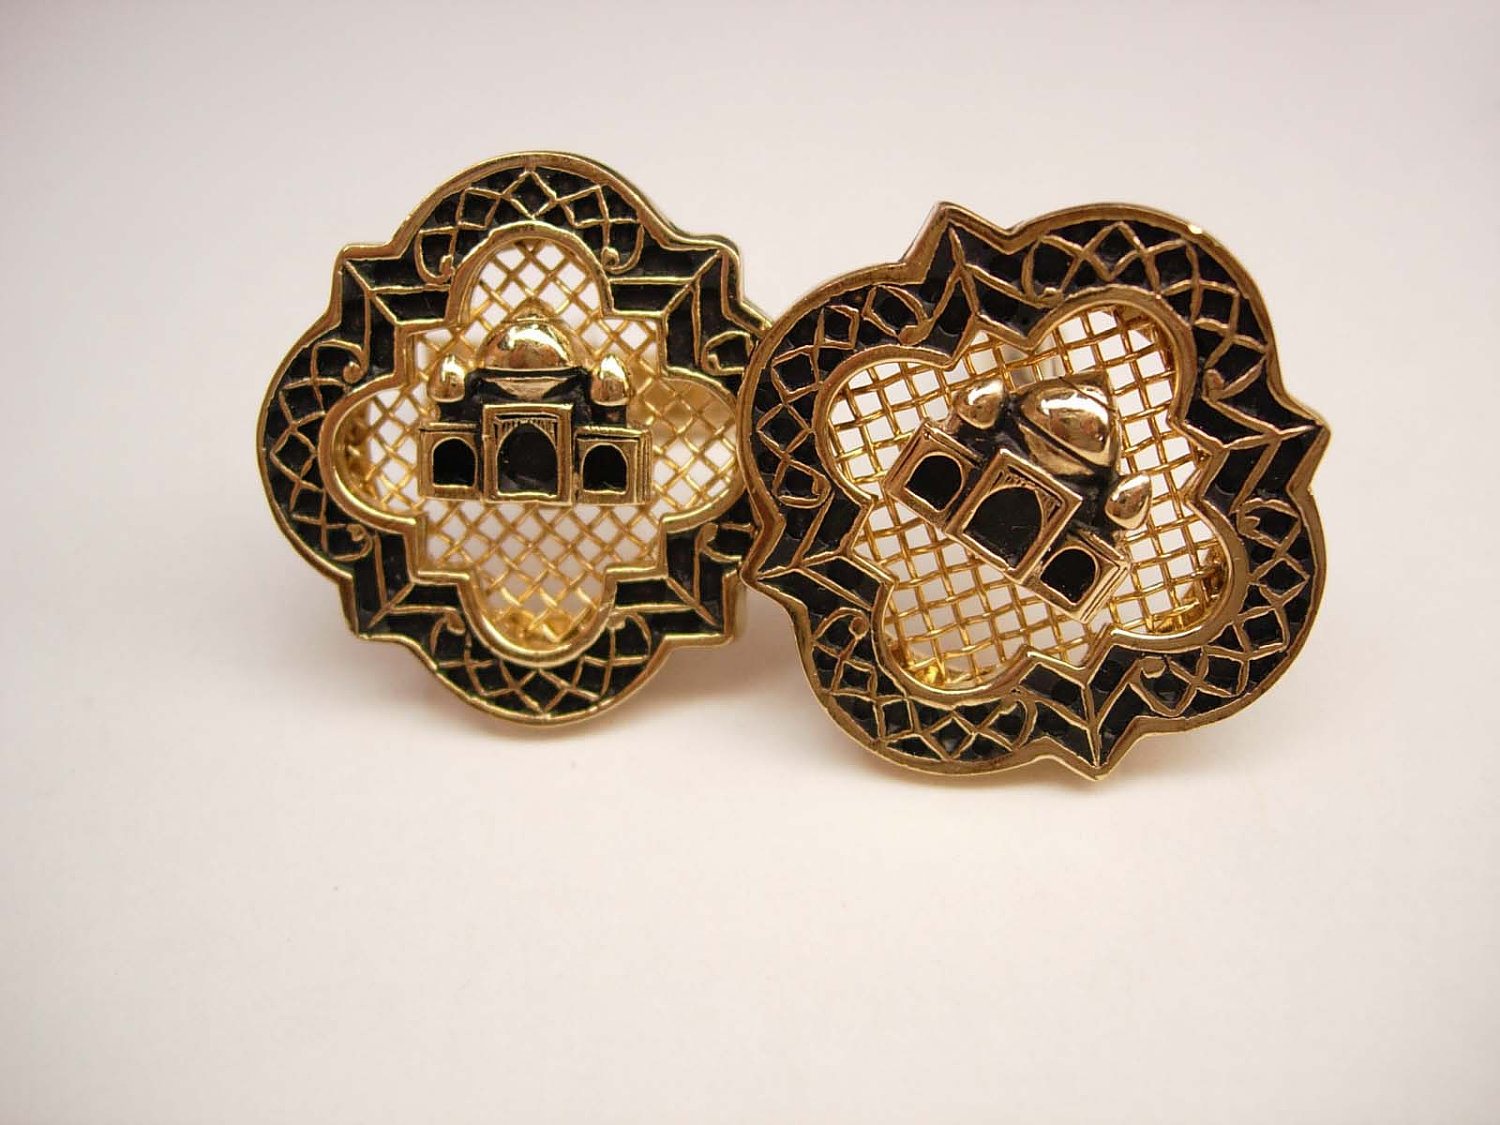 Vintage taj mahal cufflinks enamel swank wedding business for What is swank jewelry